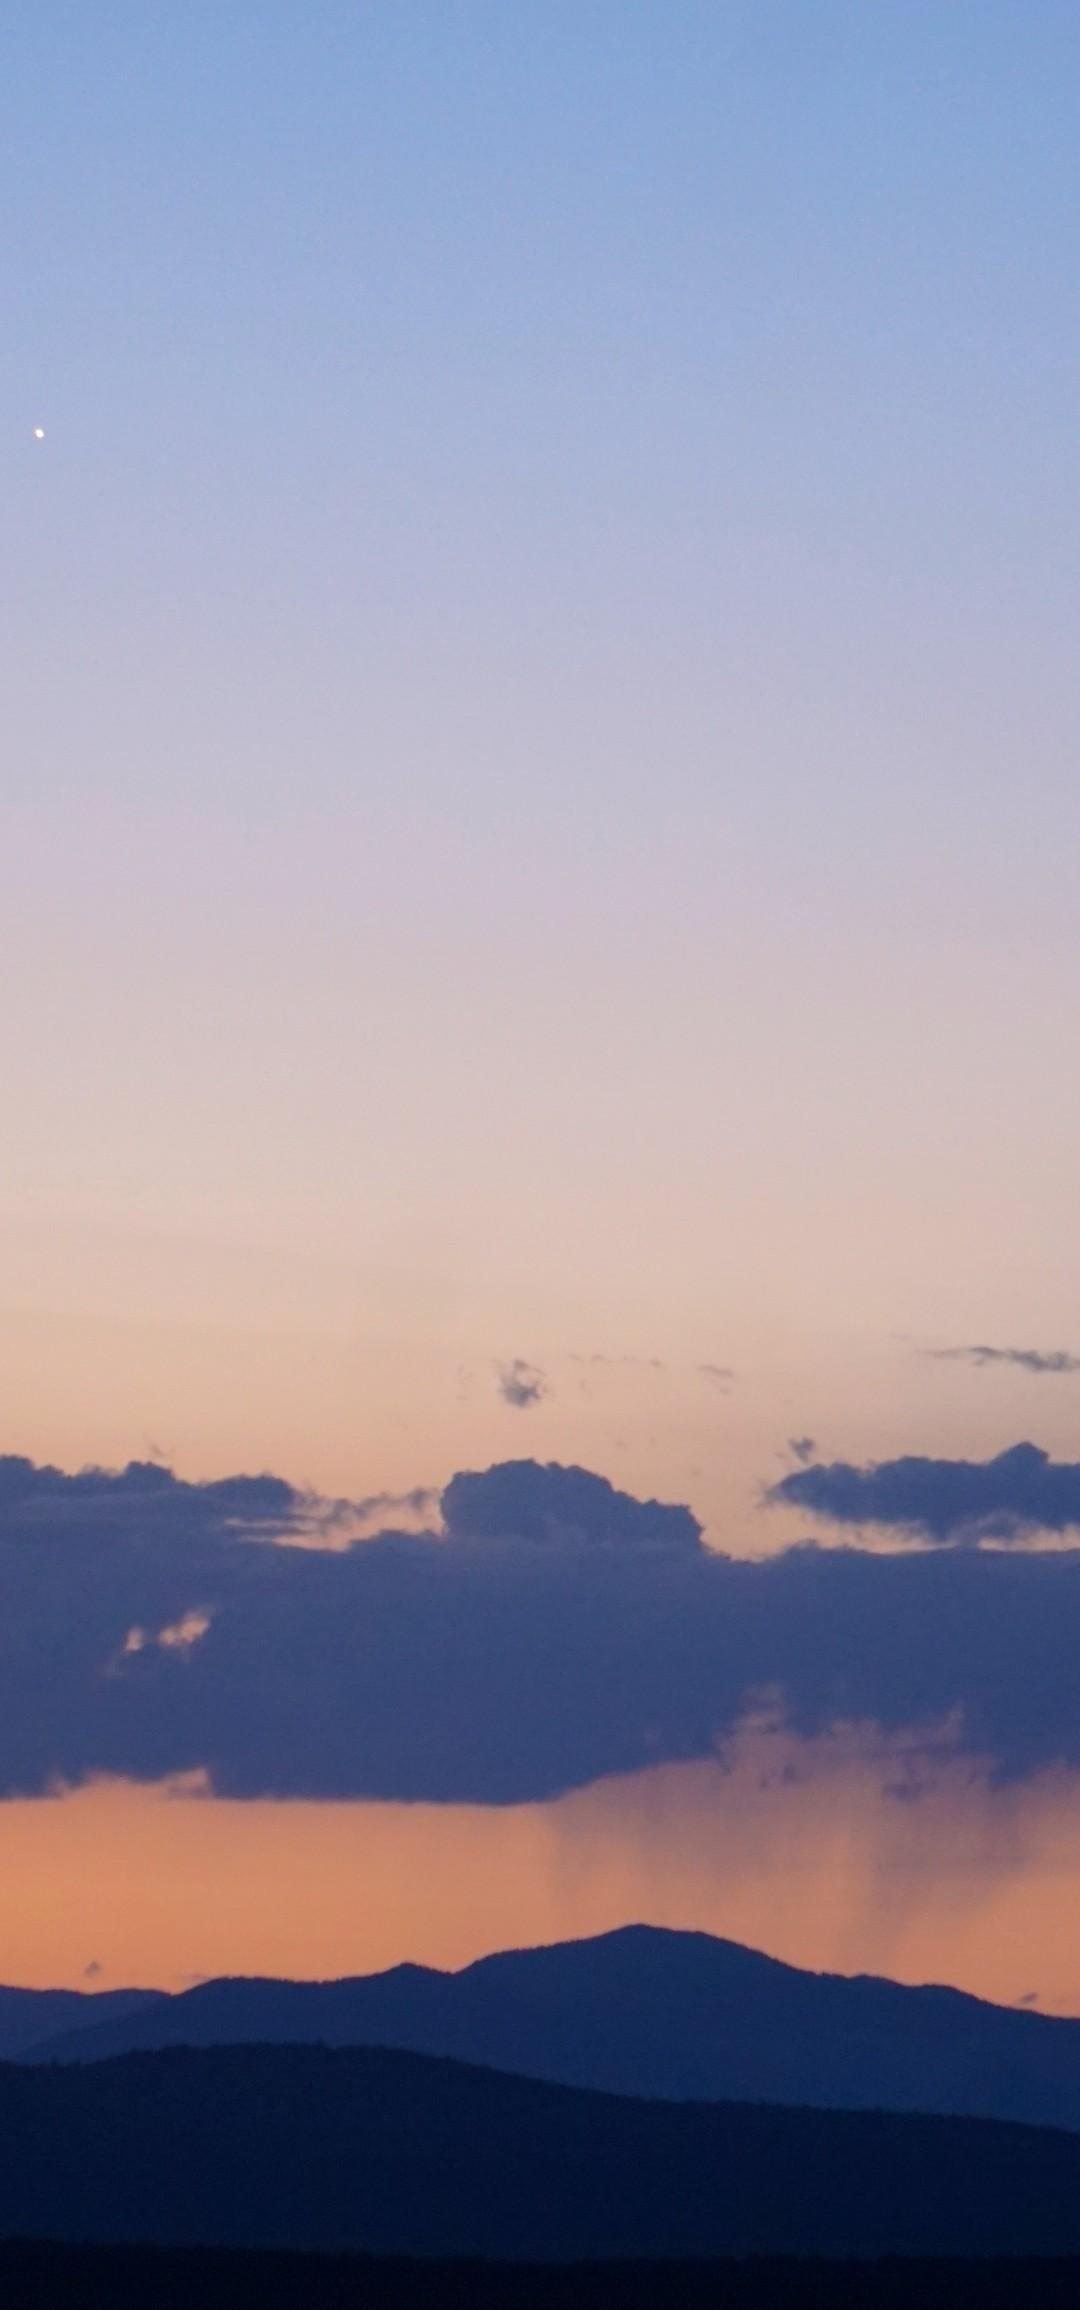 Download 1080x2310 Twilight, Moon, Clouds, Scenic Wallpapers for